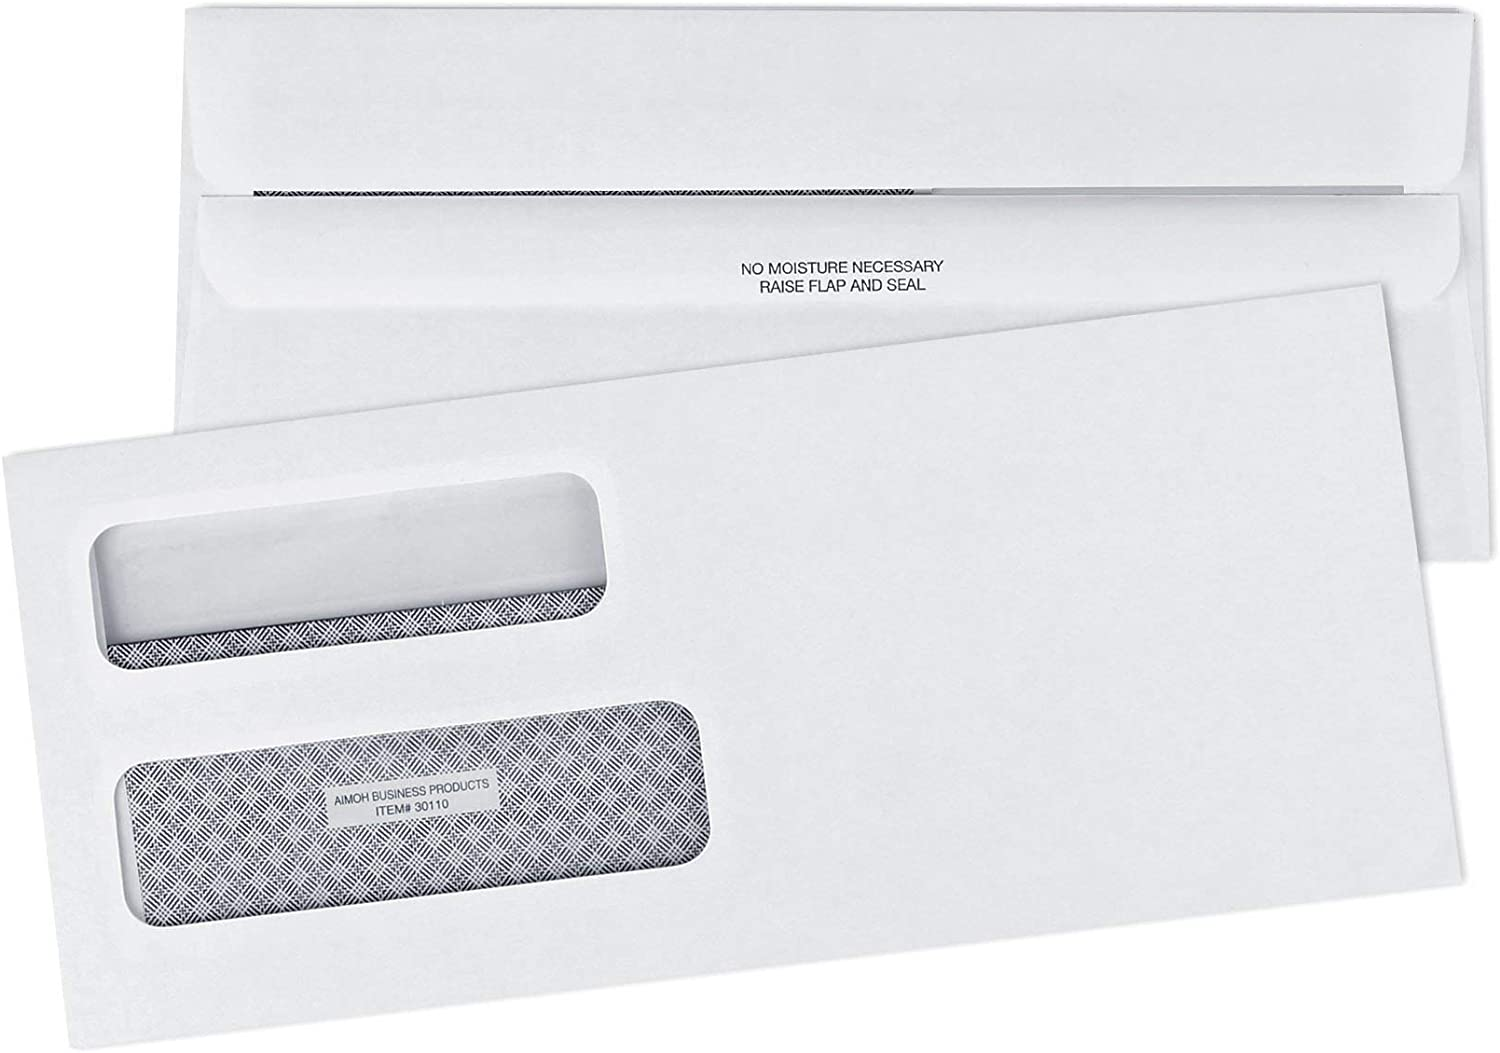 #10 Security FLIP & SEAL Double Window Envelopes - for Invoices, Statements & Legal Documents, Self-Sealing Adhesive Seal, Security Tinted, Size 4-? X 9-½ - 24 LB - 500 Count (30110)